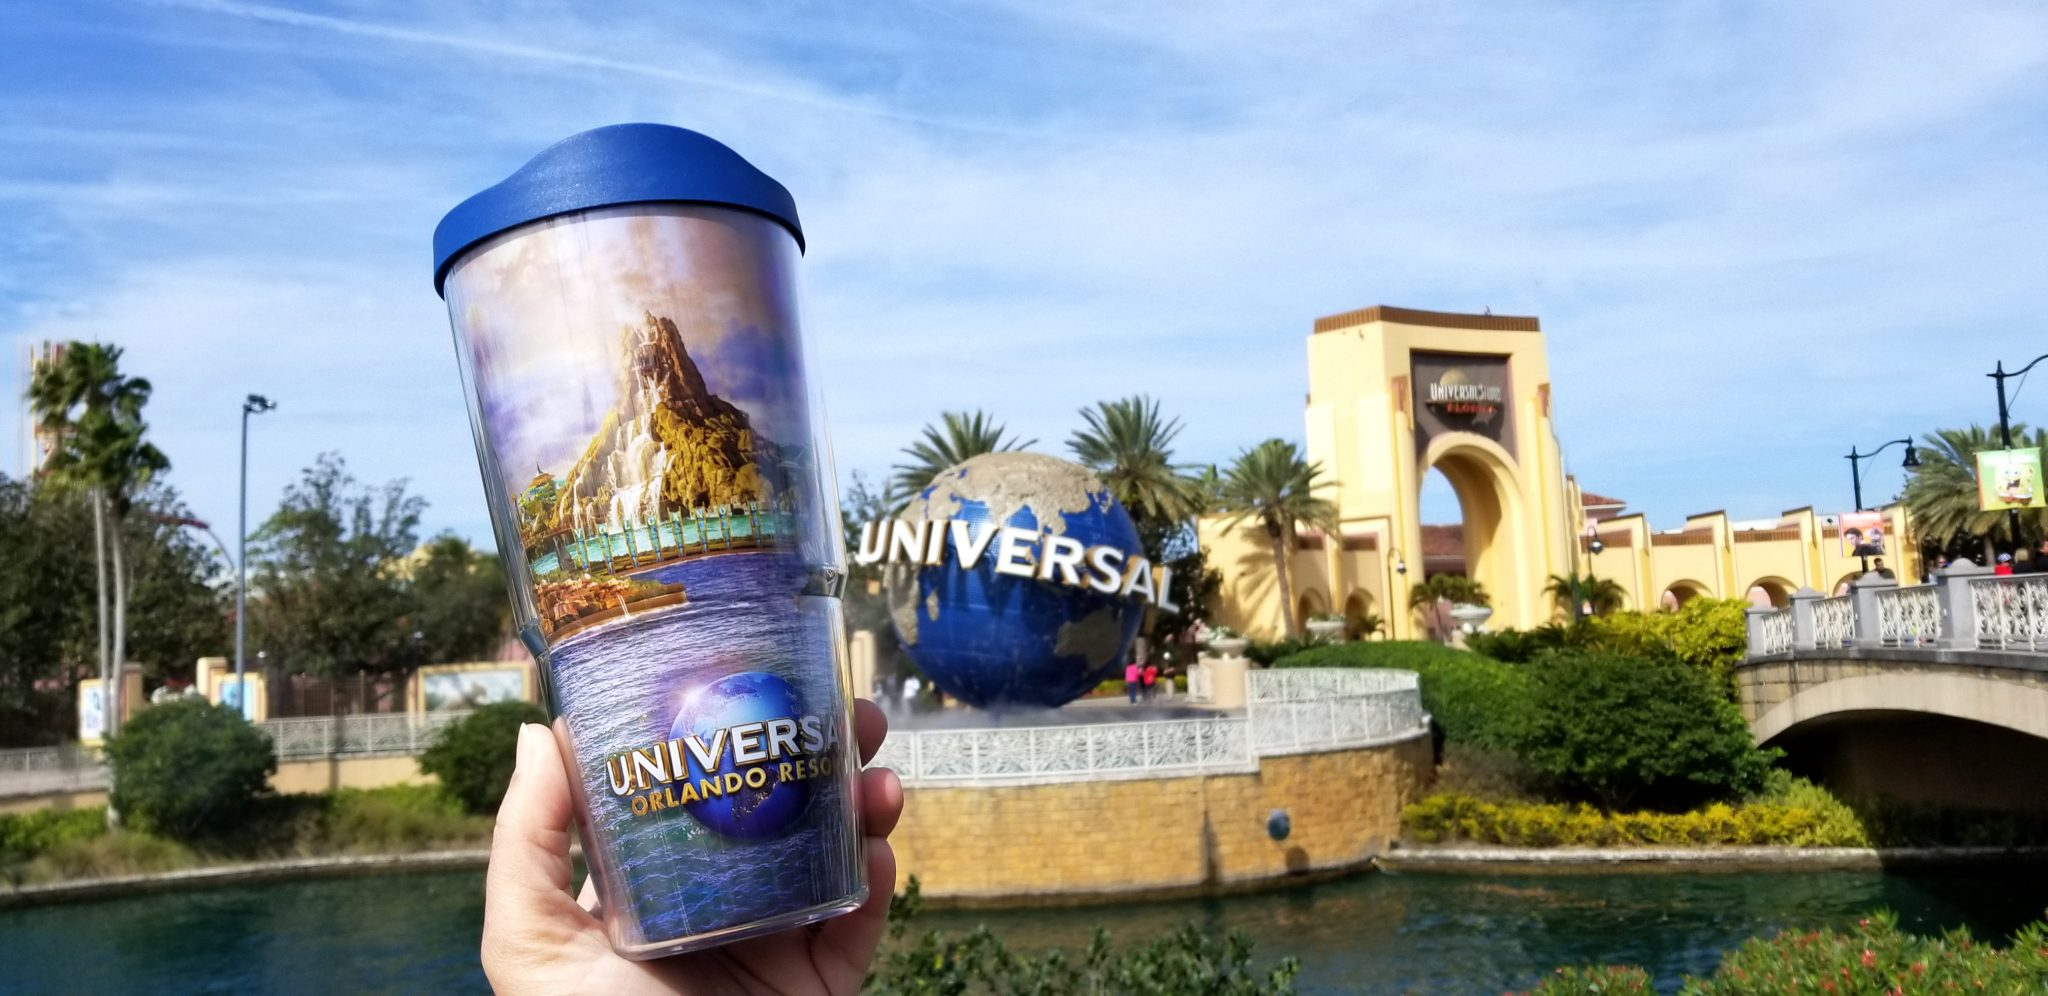 New 2018 Tervis for Universal Orlando Resort - Exclusive Merchandise from the Universal Studios Theme Park in Orlando Florida